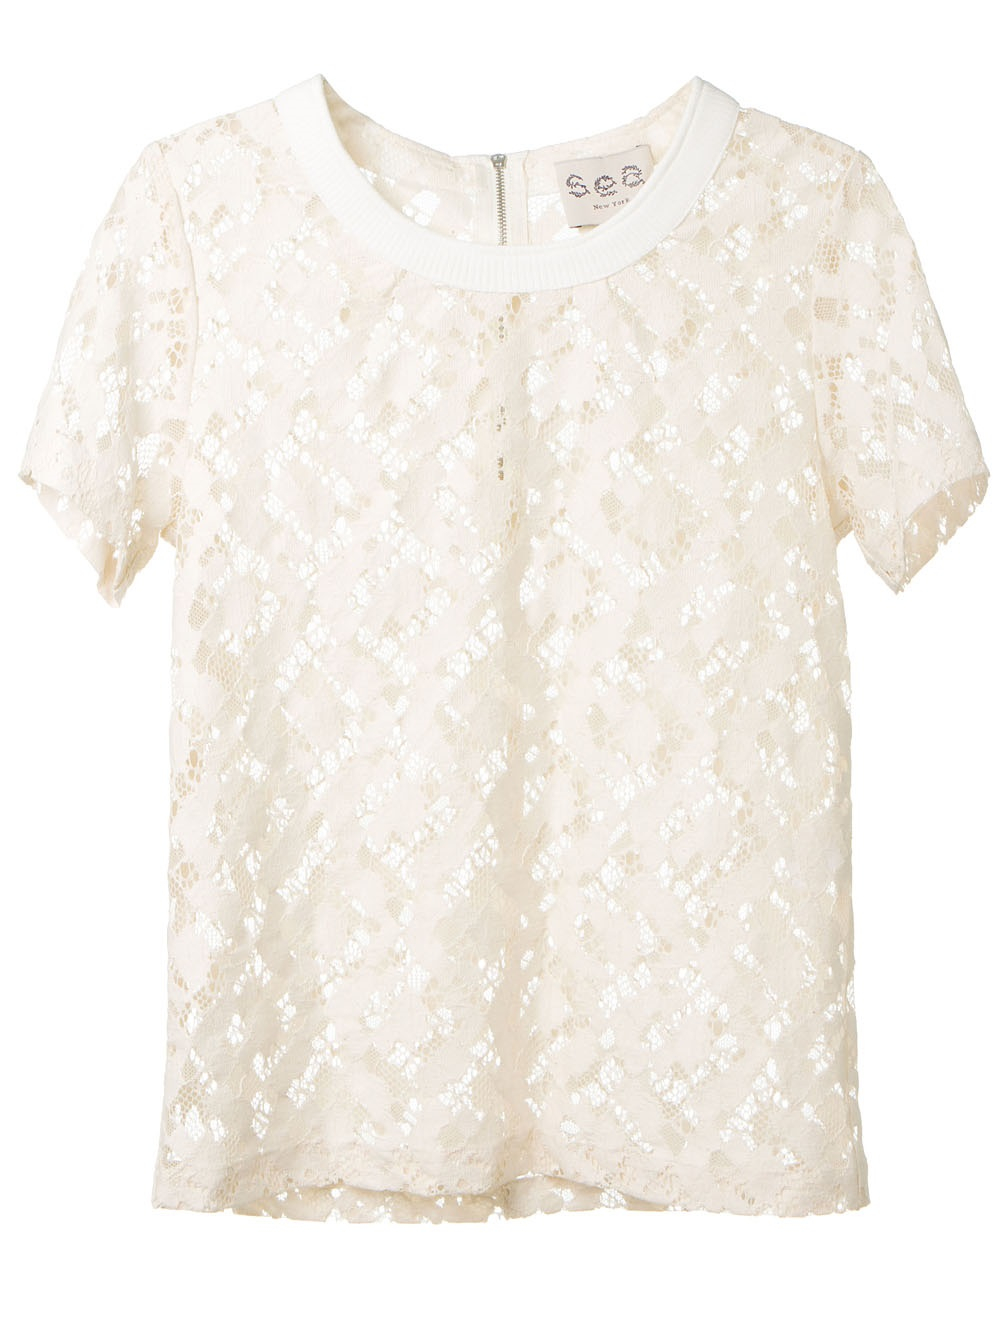 27cfb48d265a68 Lyst - Sea Floral Lace Top in White